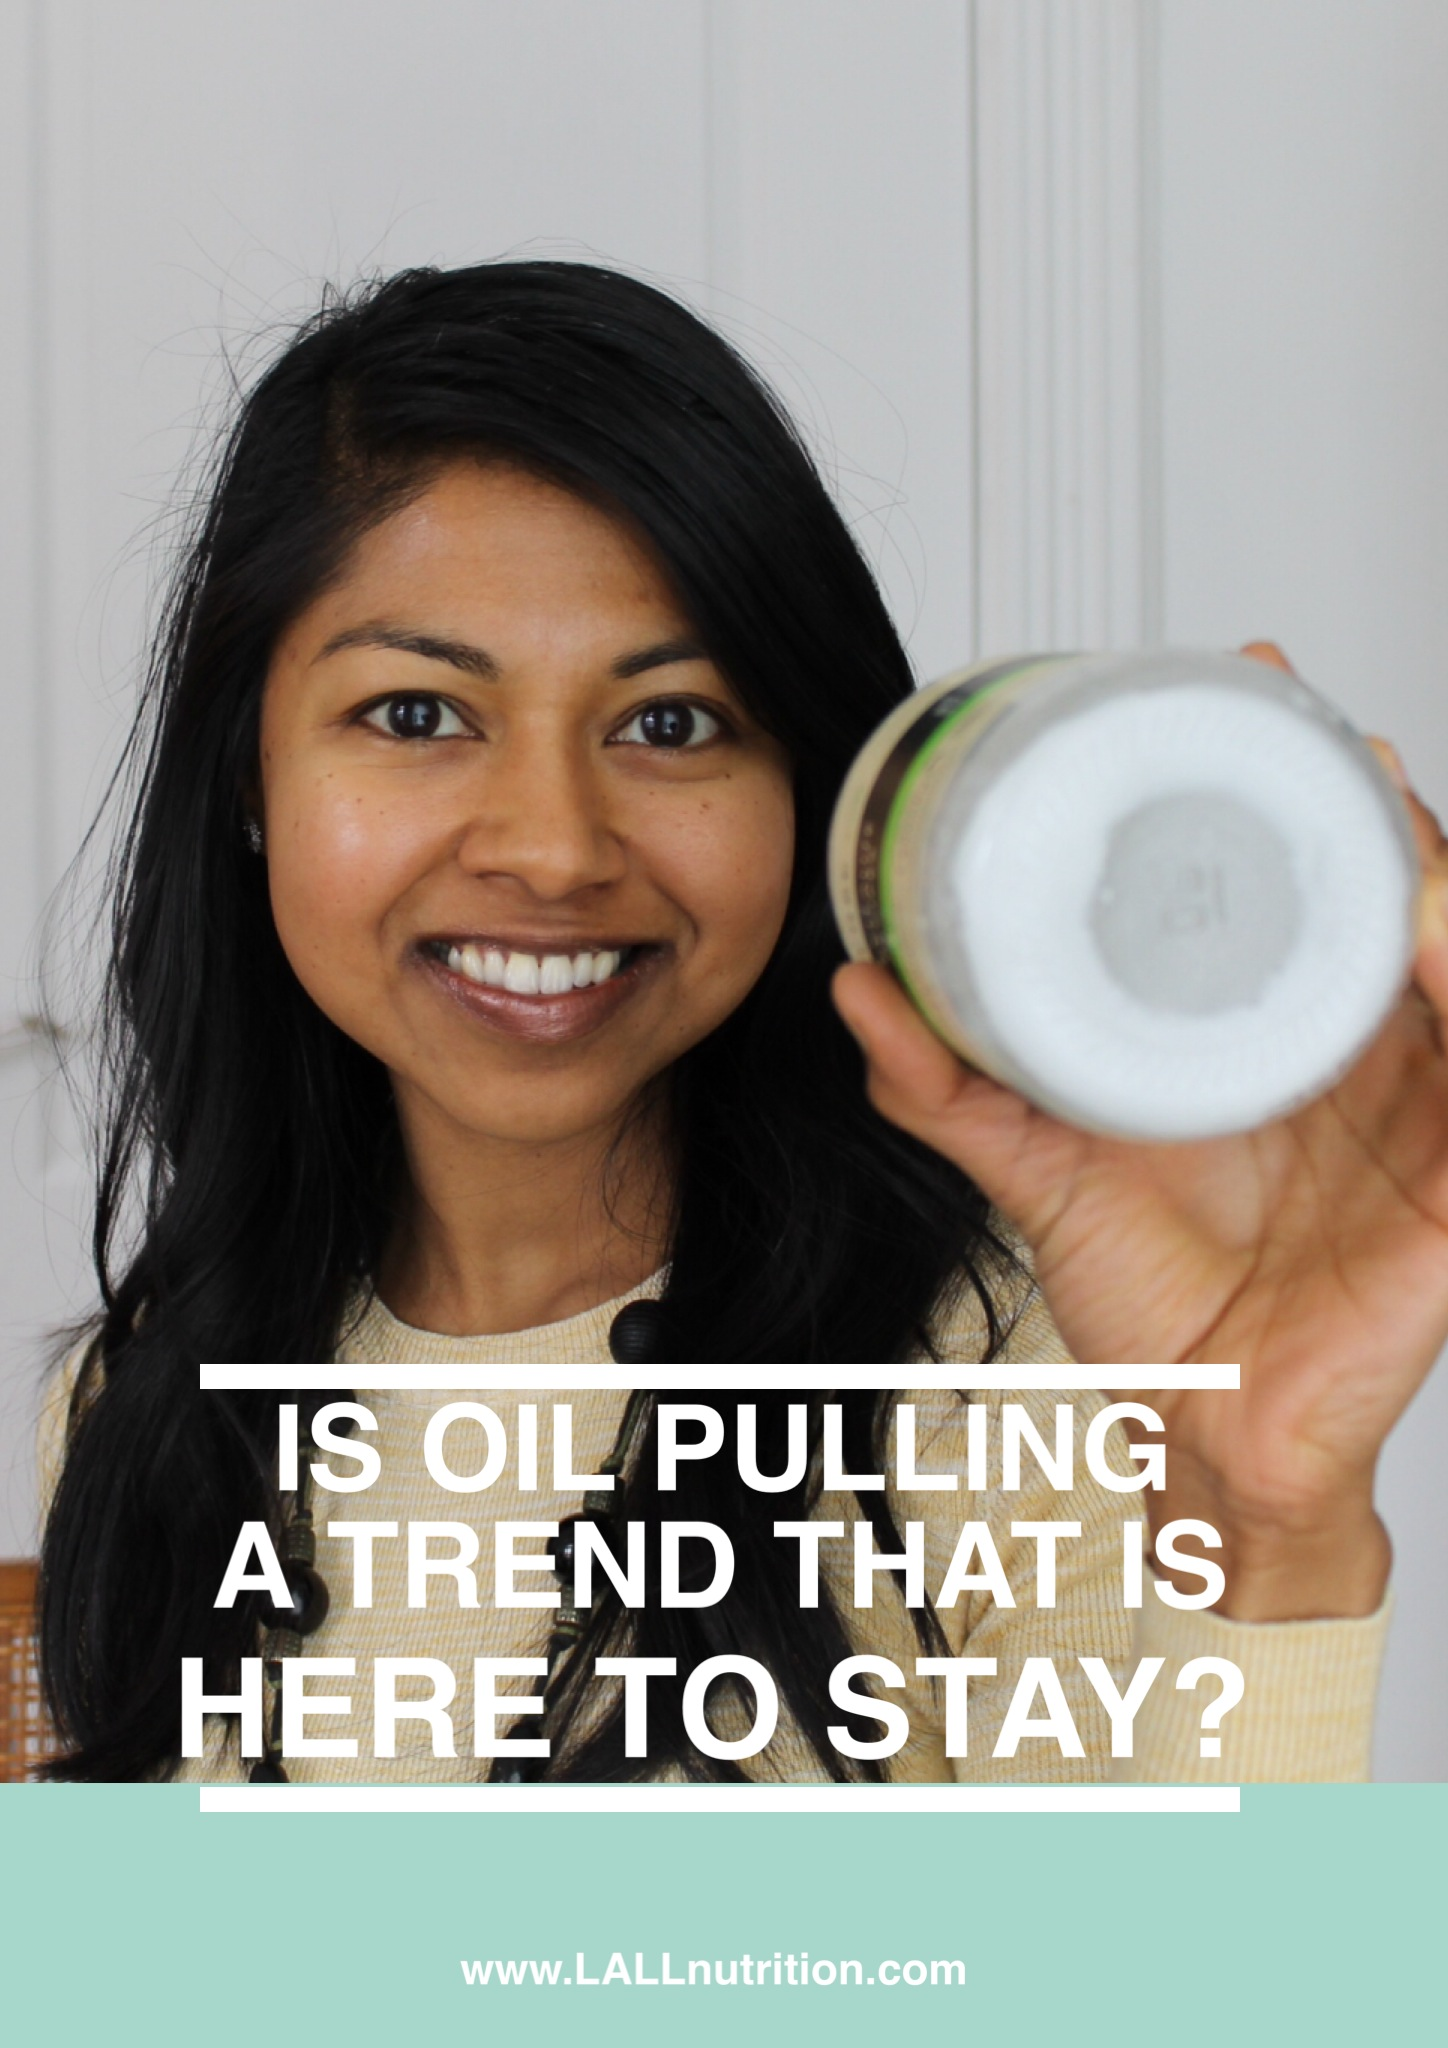 Is Oil Pulling a Trend that is Here to Stay?